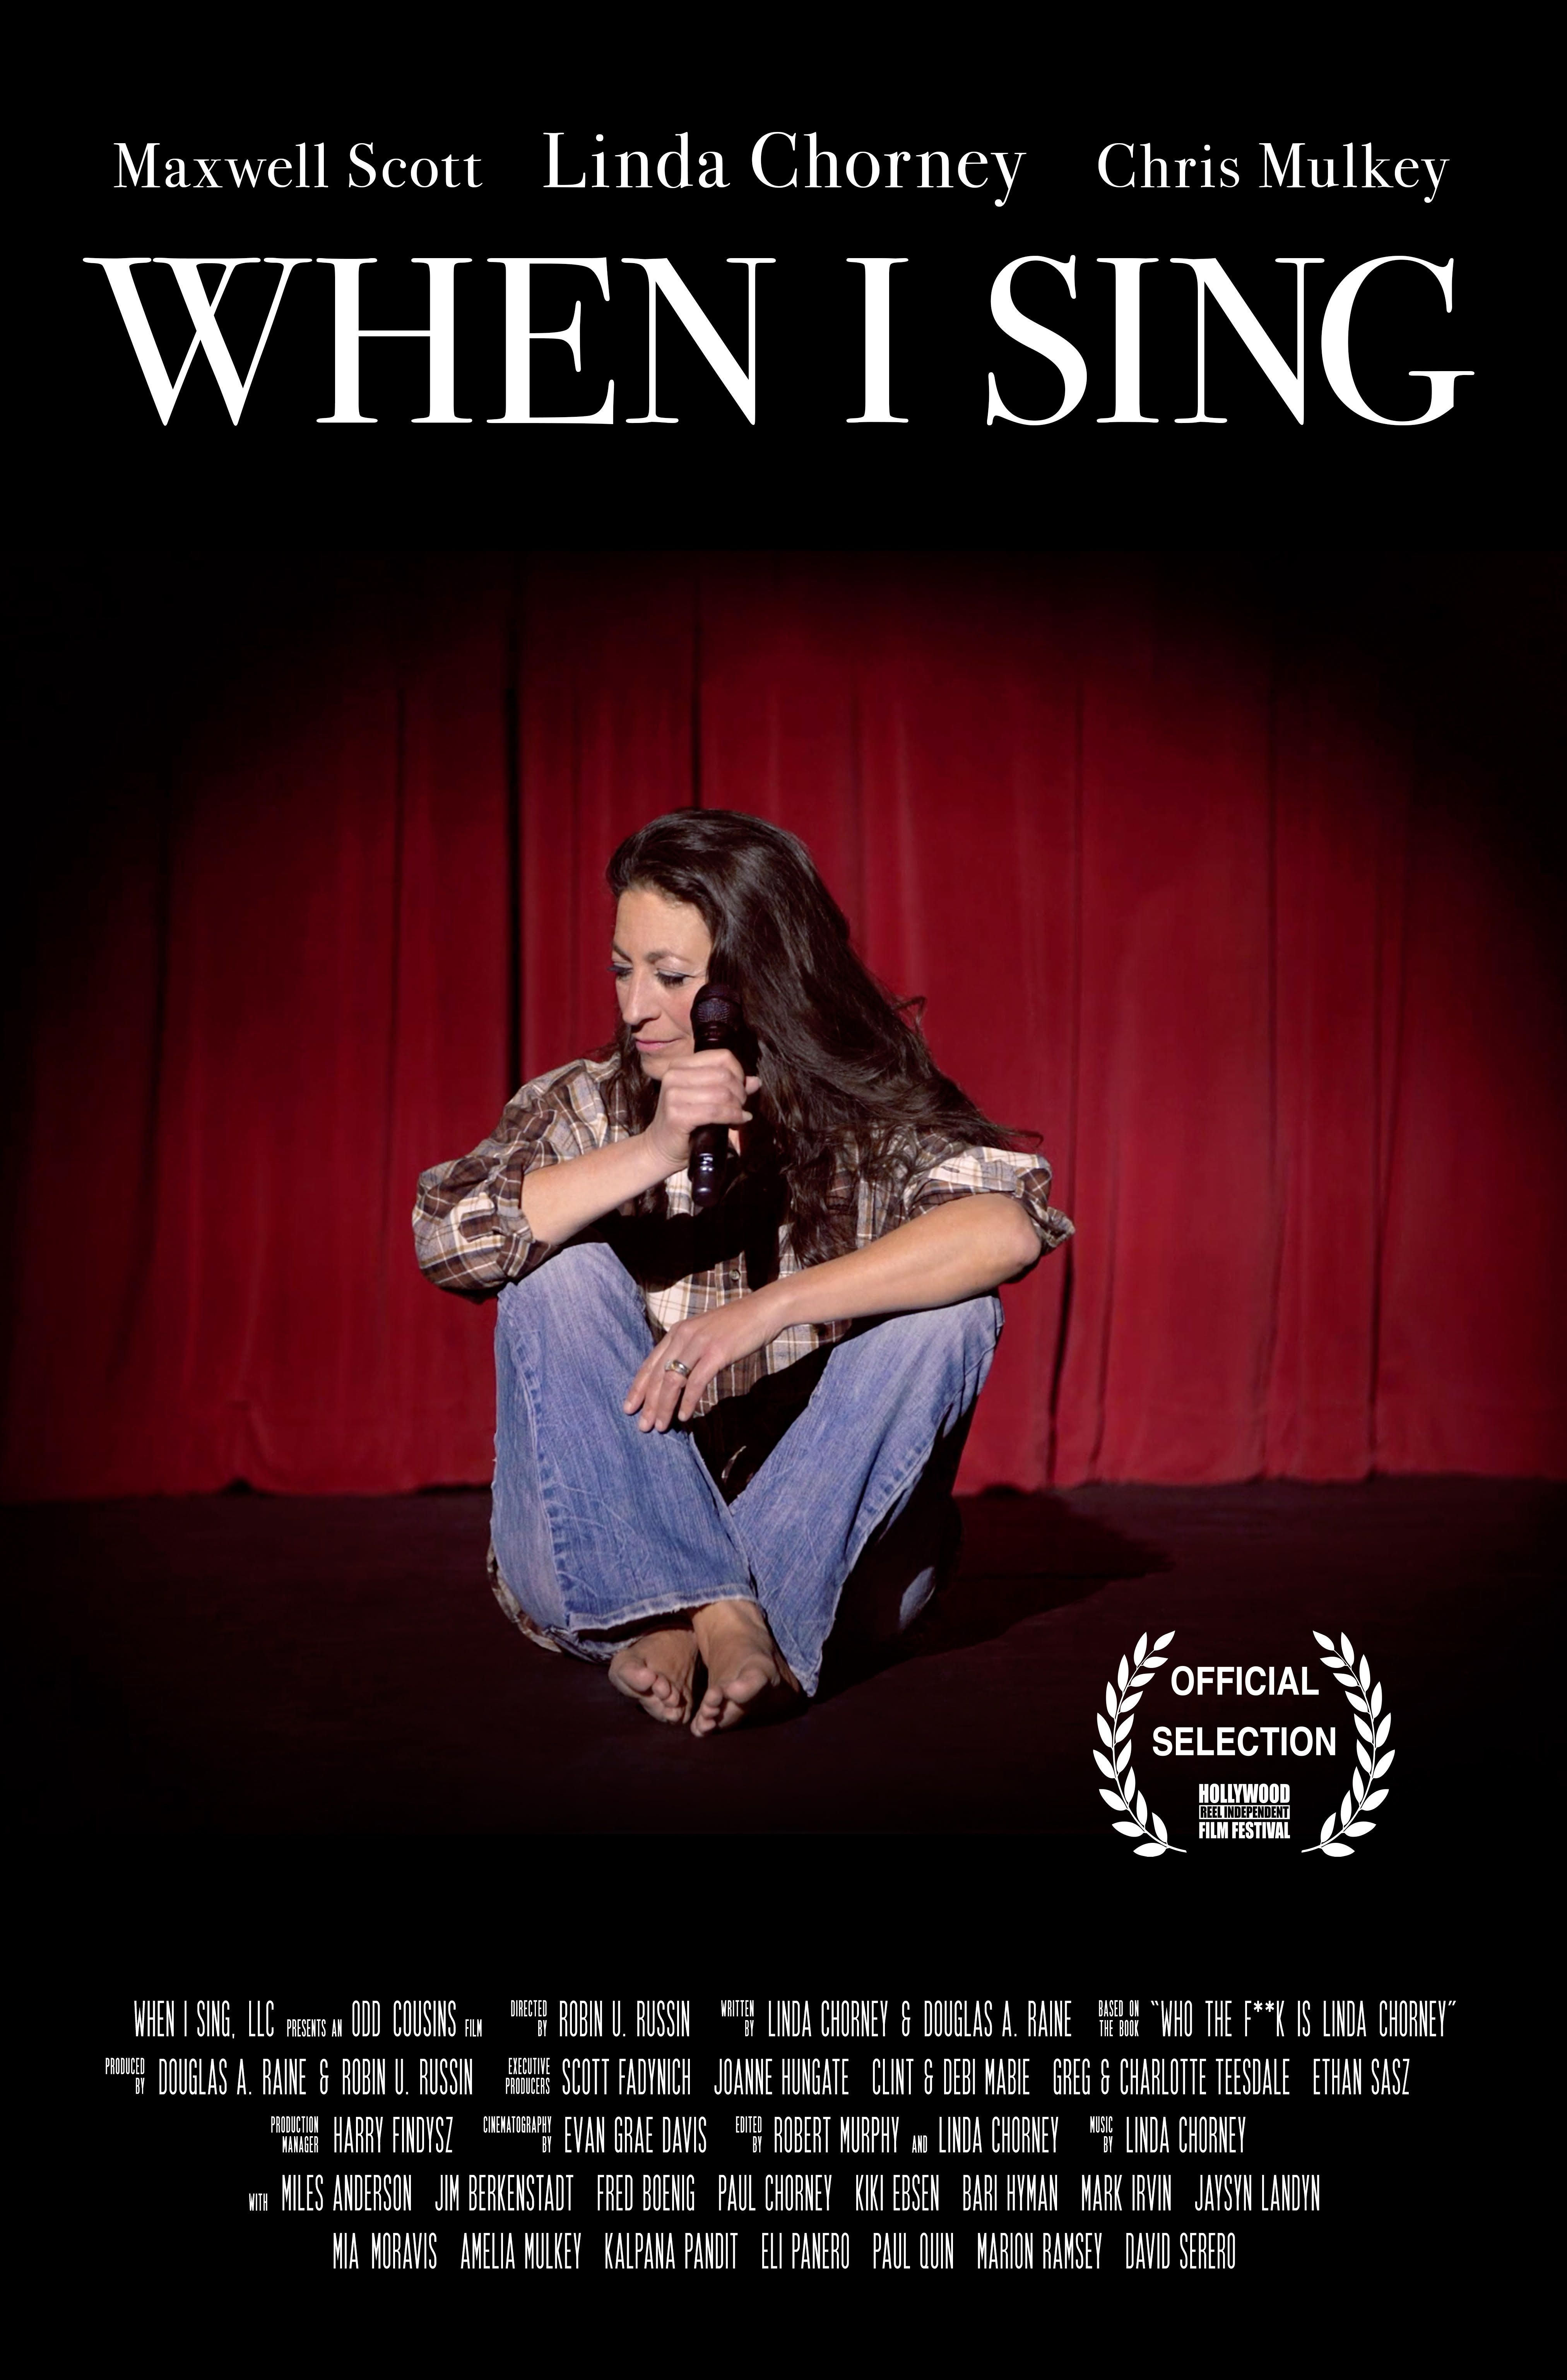 Linda Chorney's feature film, WHEN I SING premieres at the